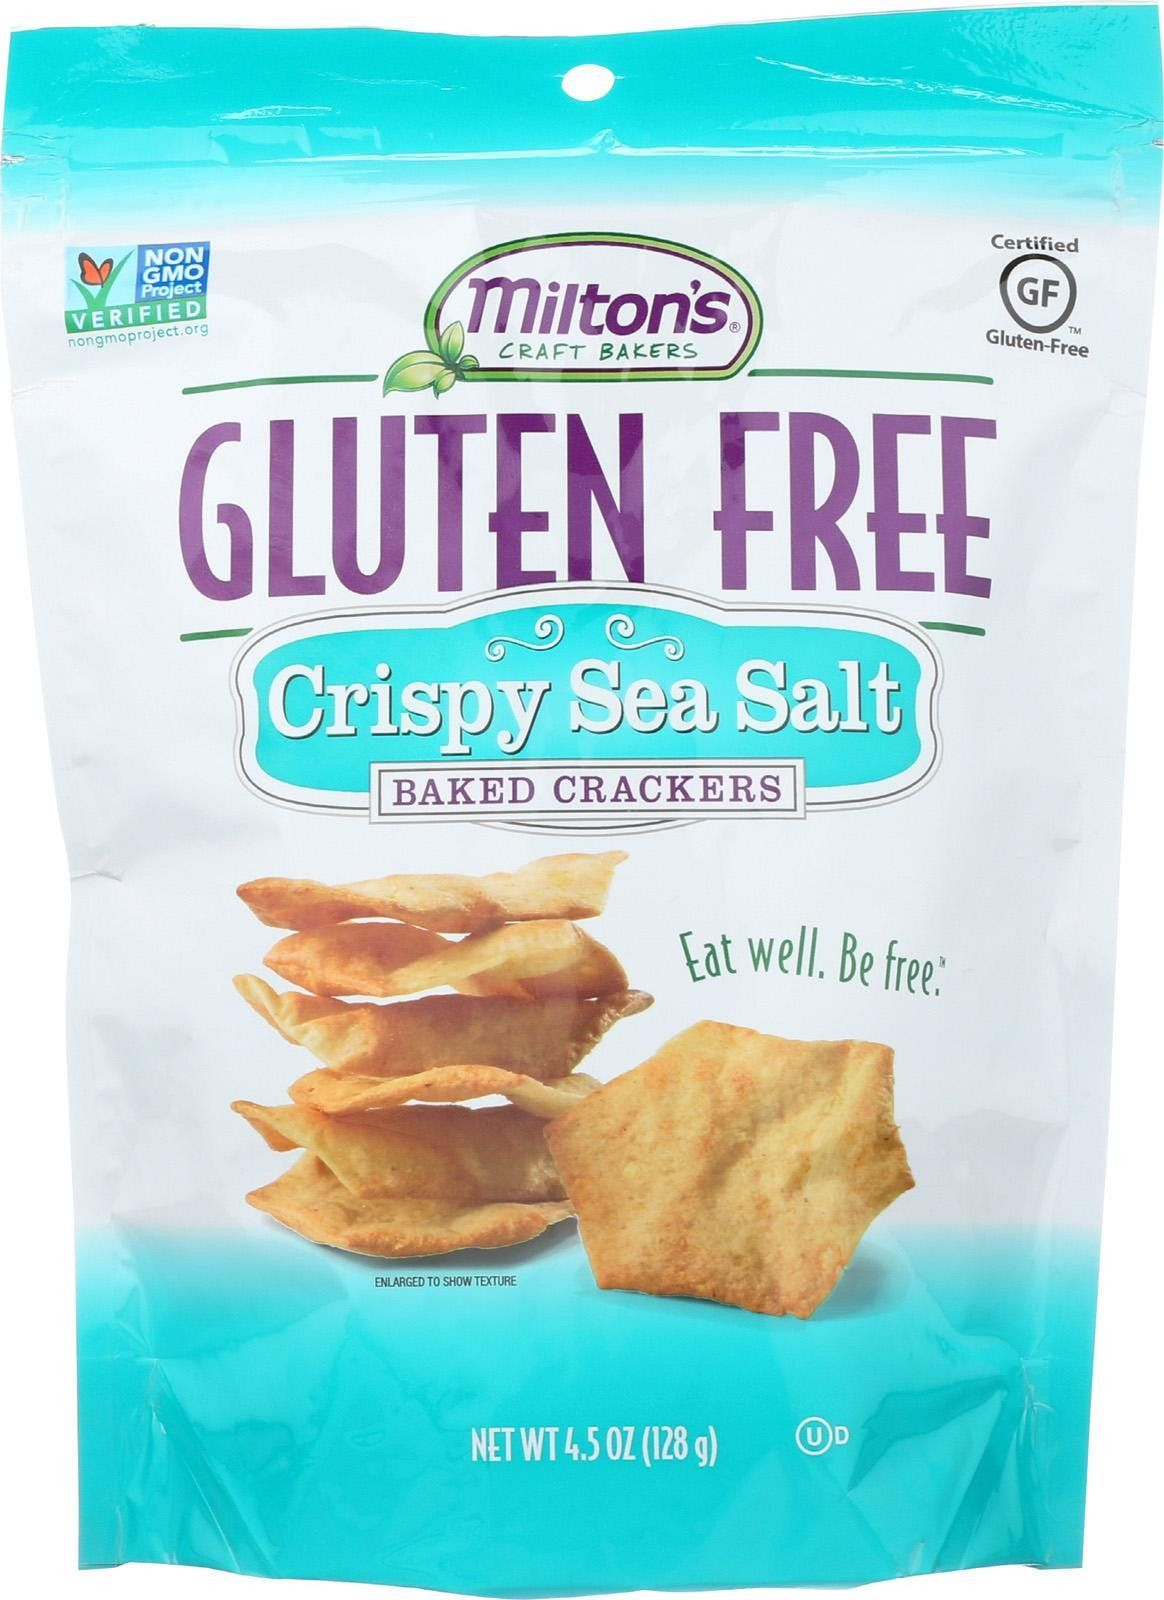 44+ Miltons craft bakers crackers information